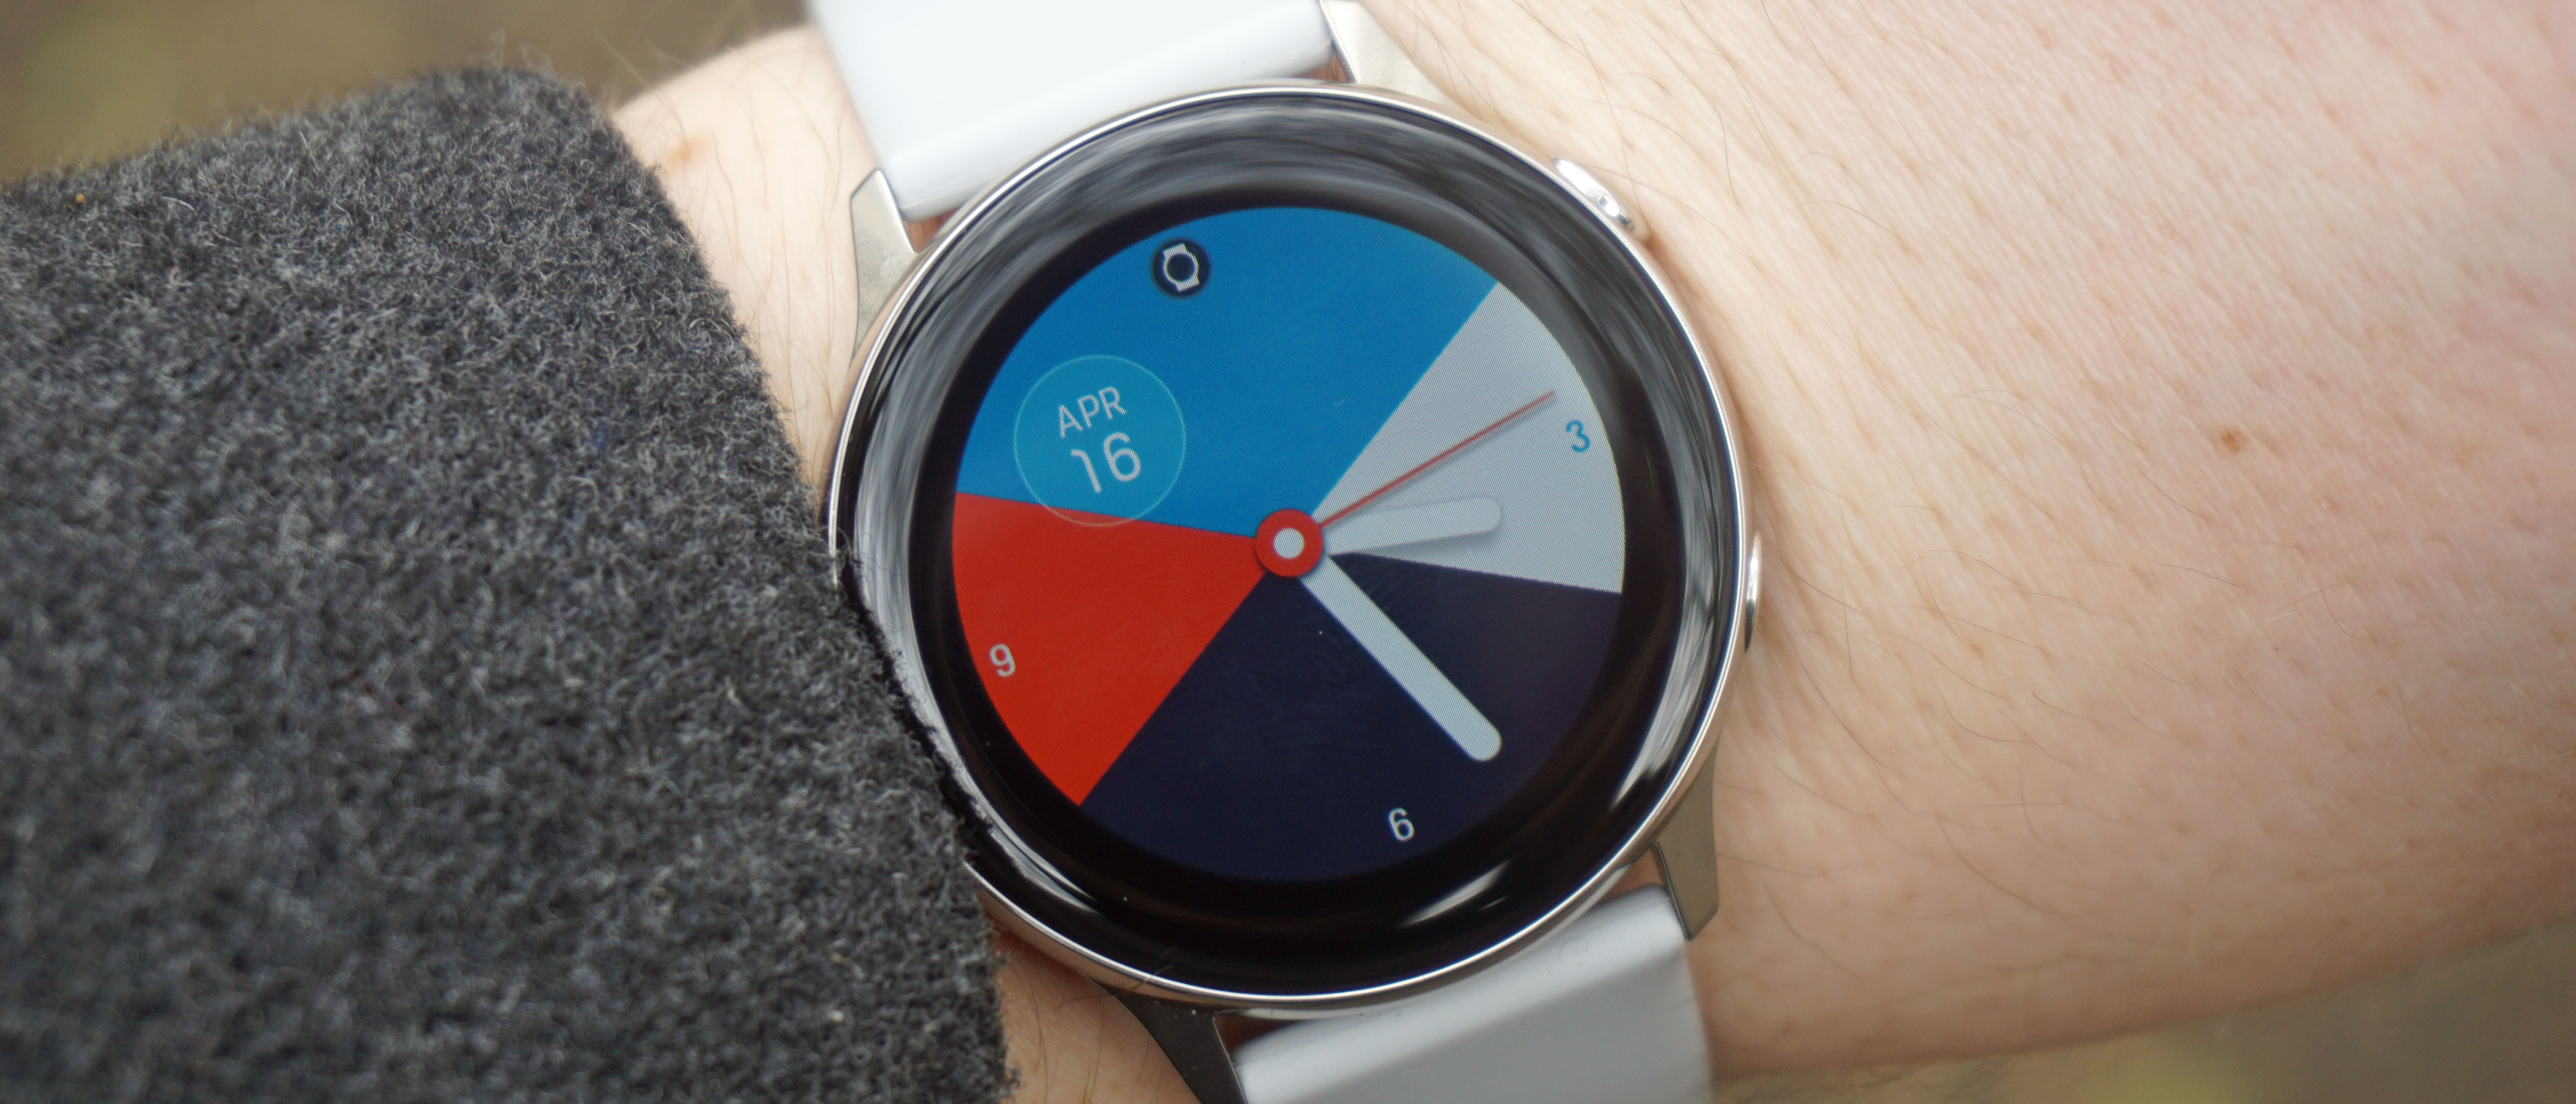 3acb7eee8e6 Samsung Galaxy Watch Active review